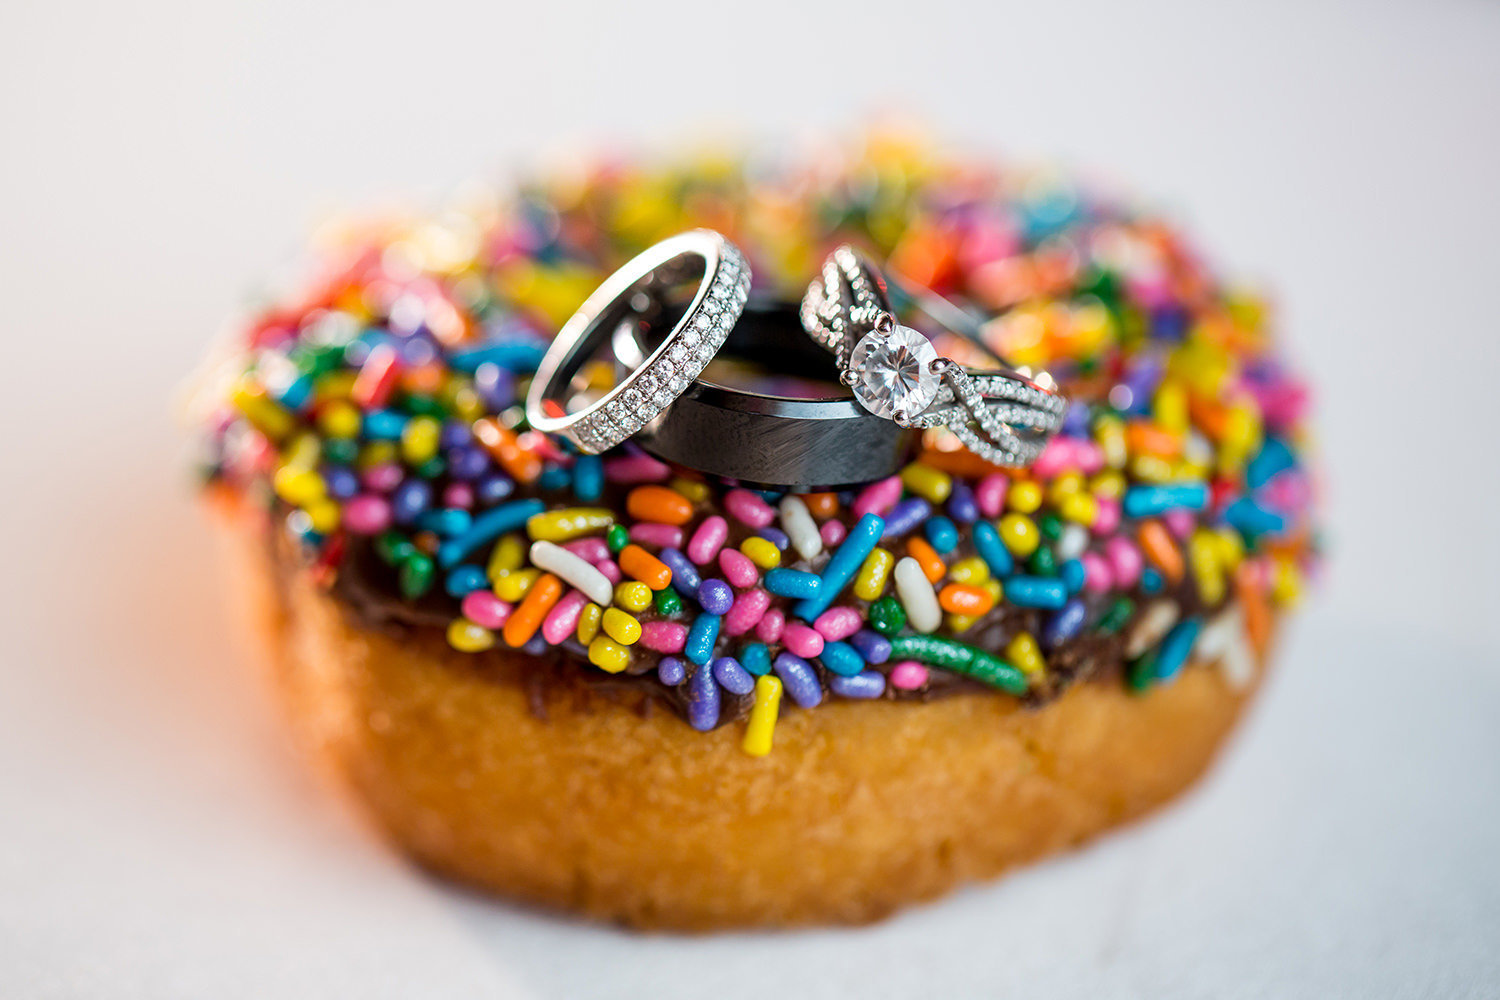 rings on a sprinkle donut